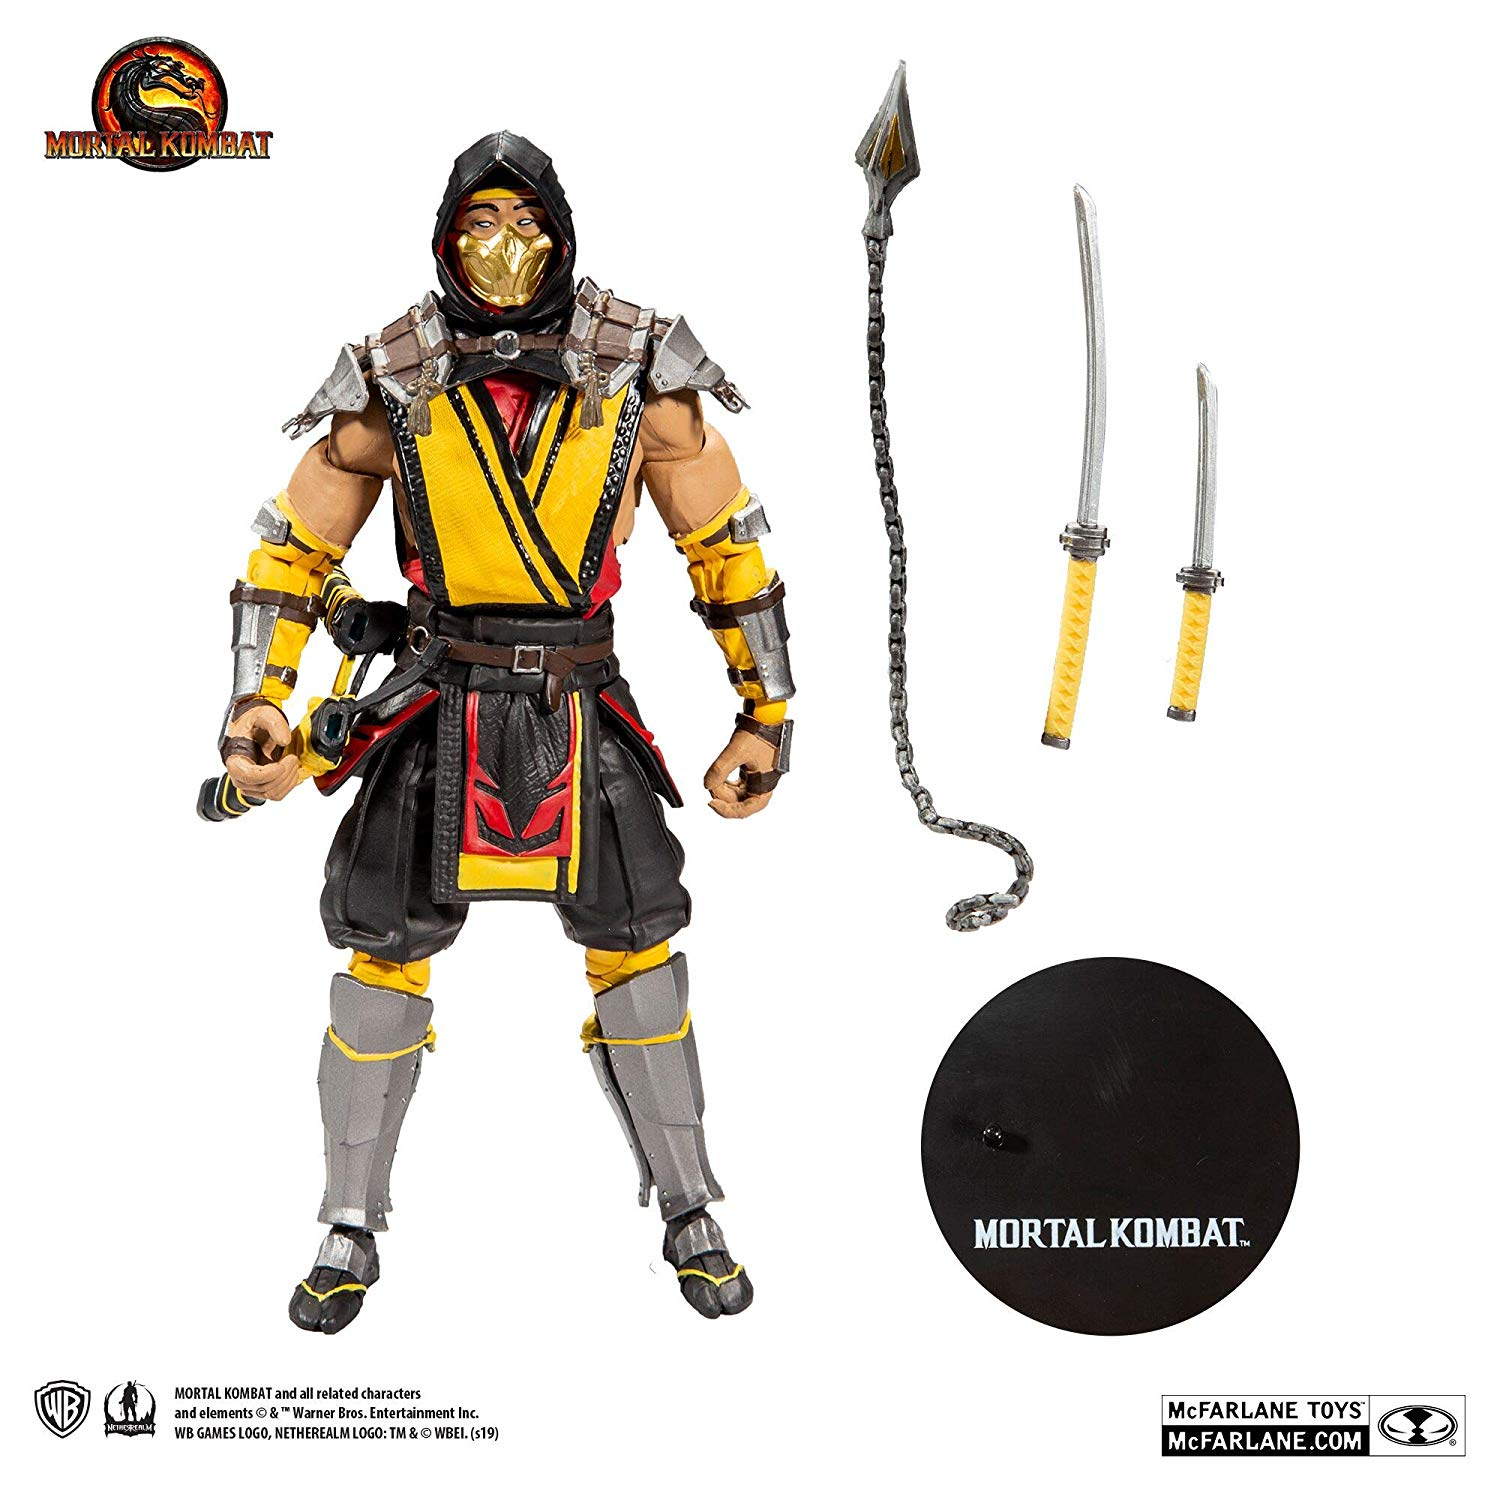 Official Mortal Kombat 11 Scorpion Toy Images Unveiled Scified Com